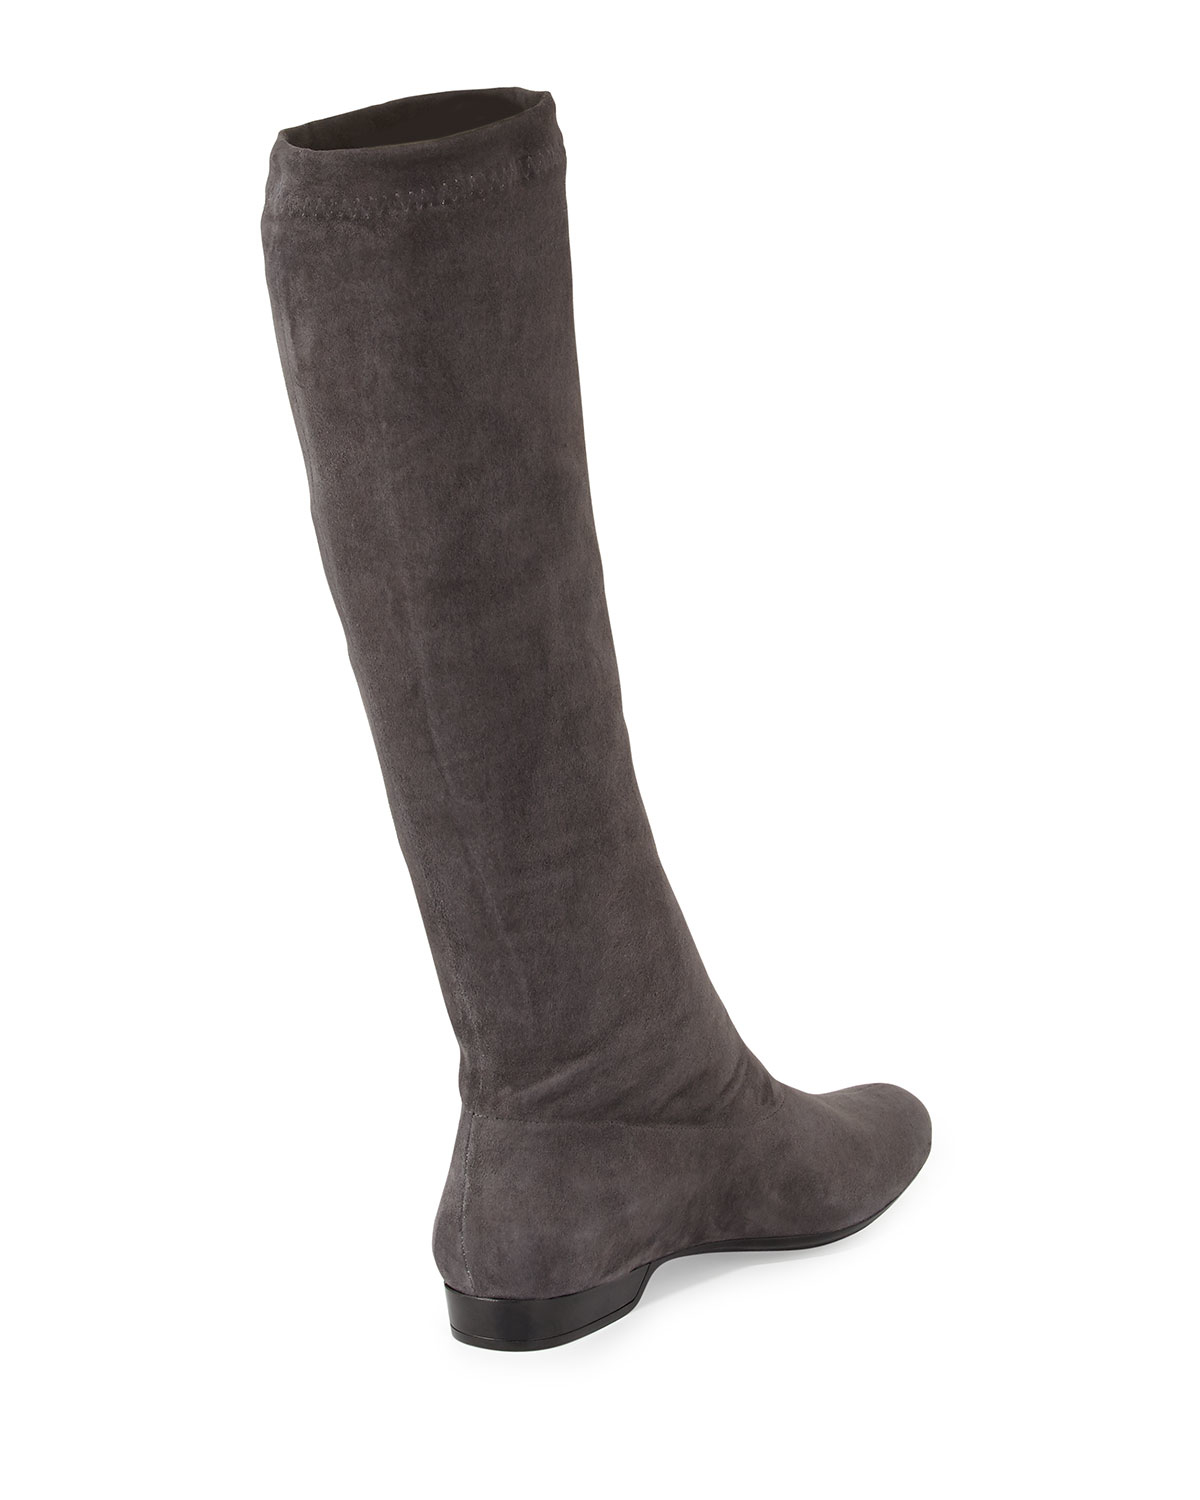 60e68212d91 Lyst - Robert Clergerie Folonj Suede Knee-High Boots in Gray